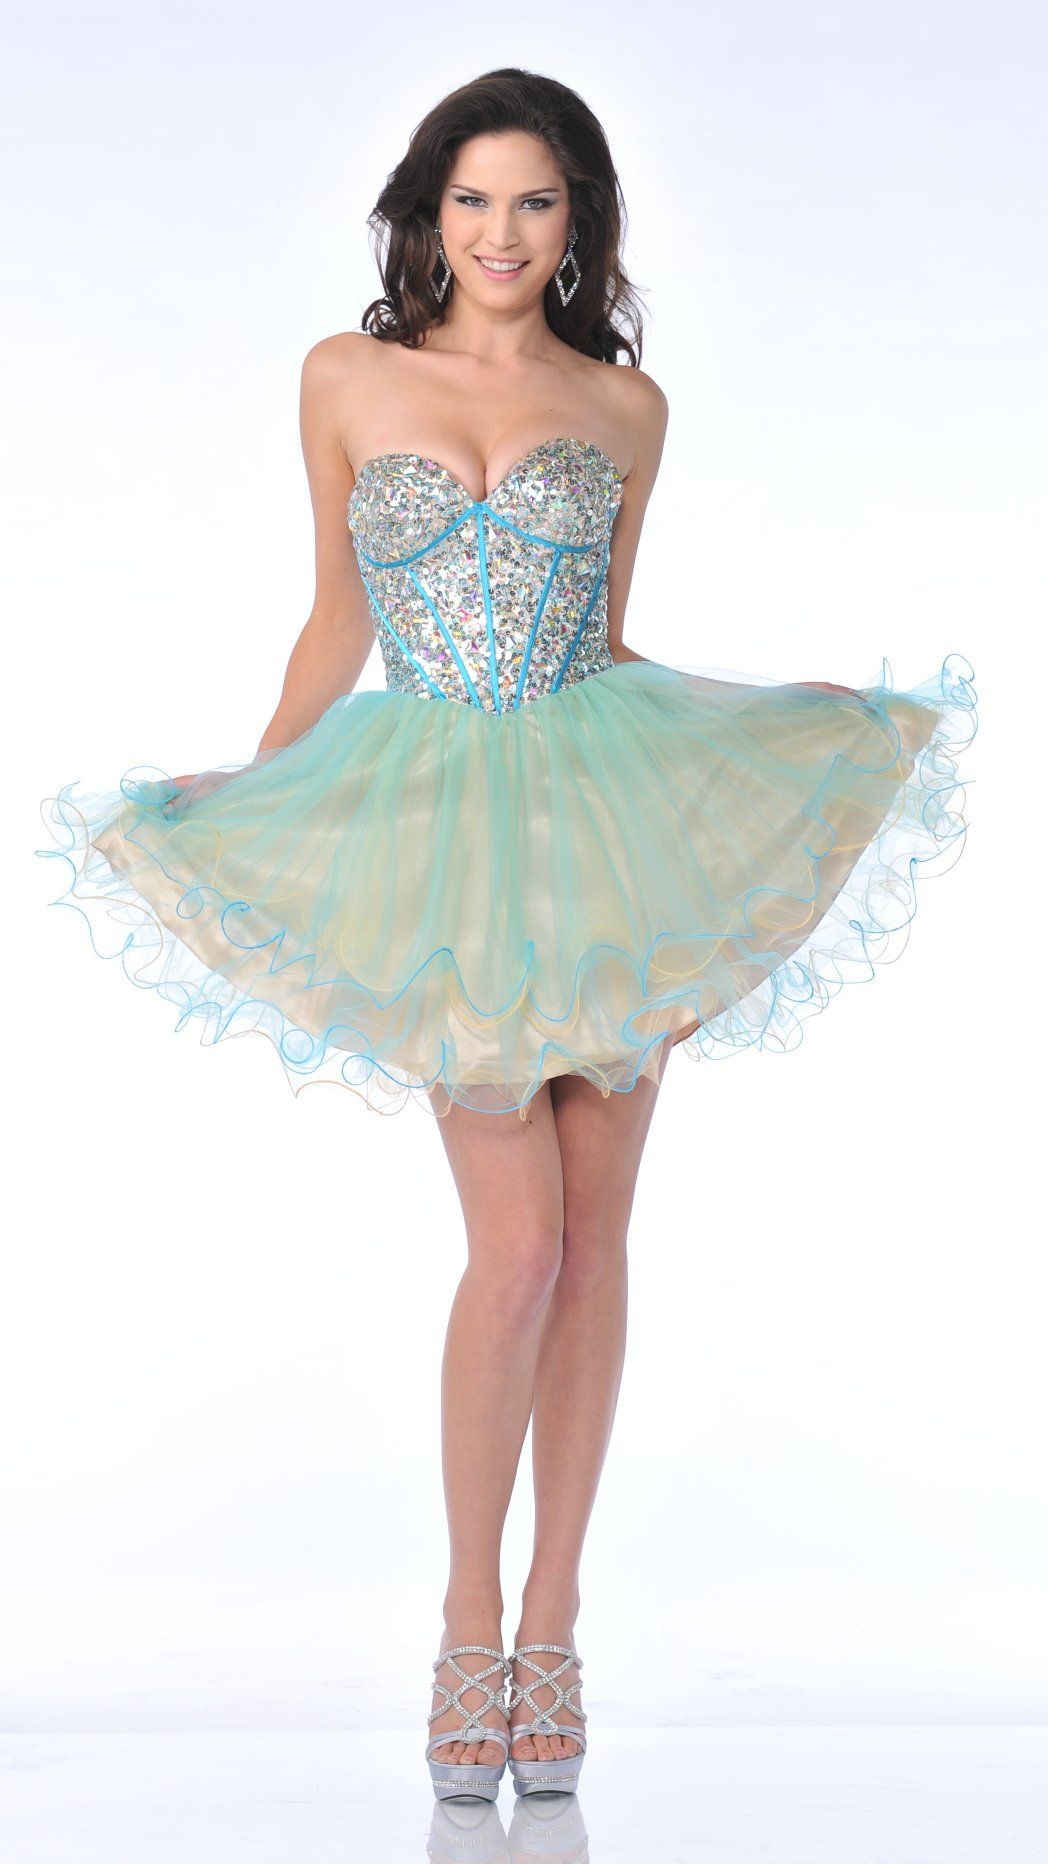 fb27683949a5 Turquoise/Yellow Poofy Homecoming Dress Strapless Sexy Corset Rhinestone  $207.99